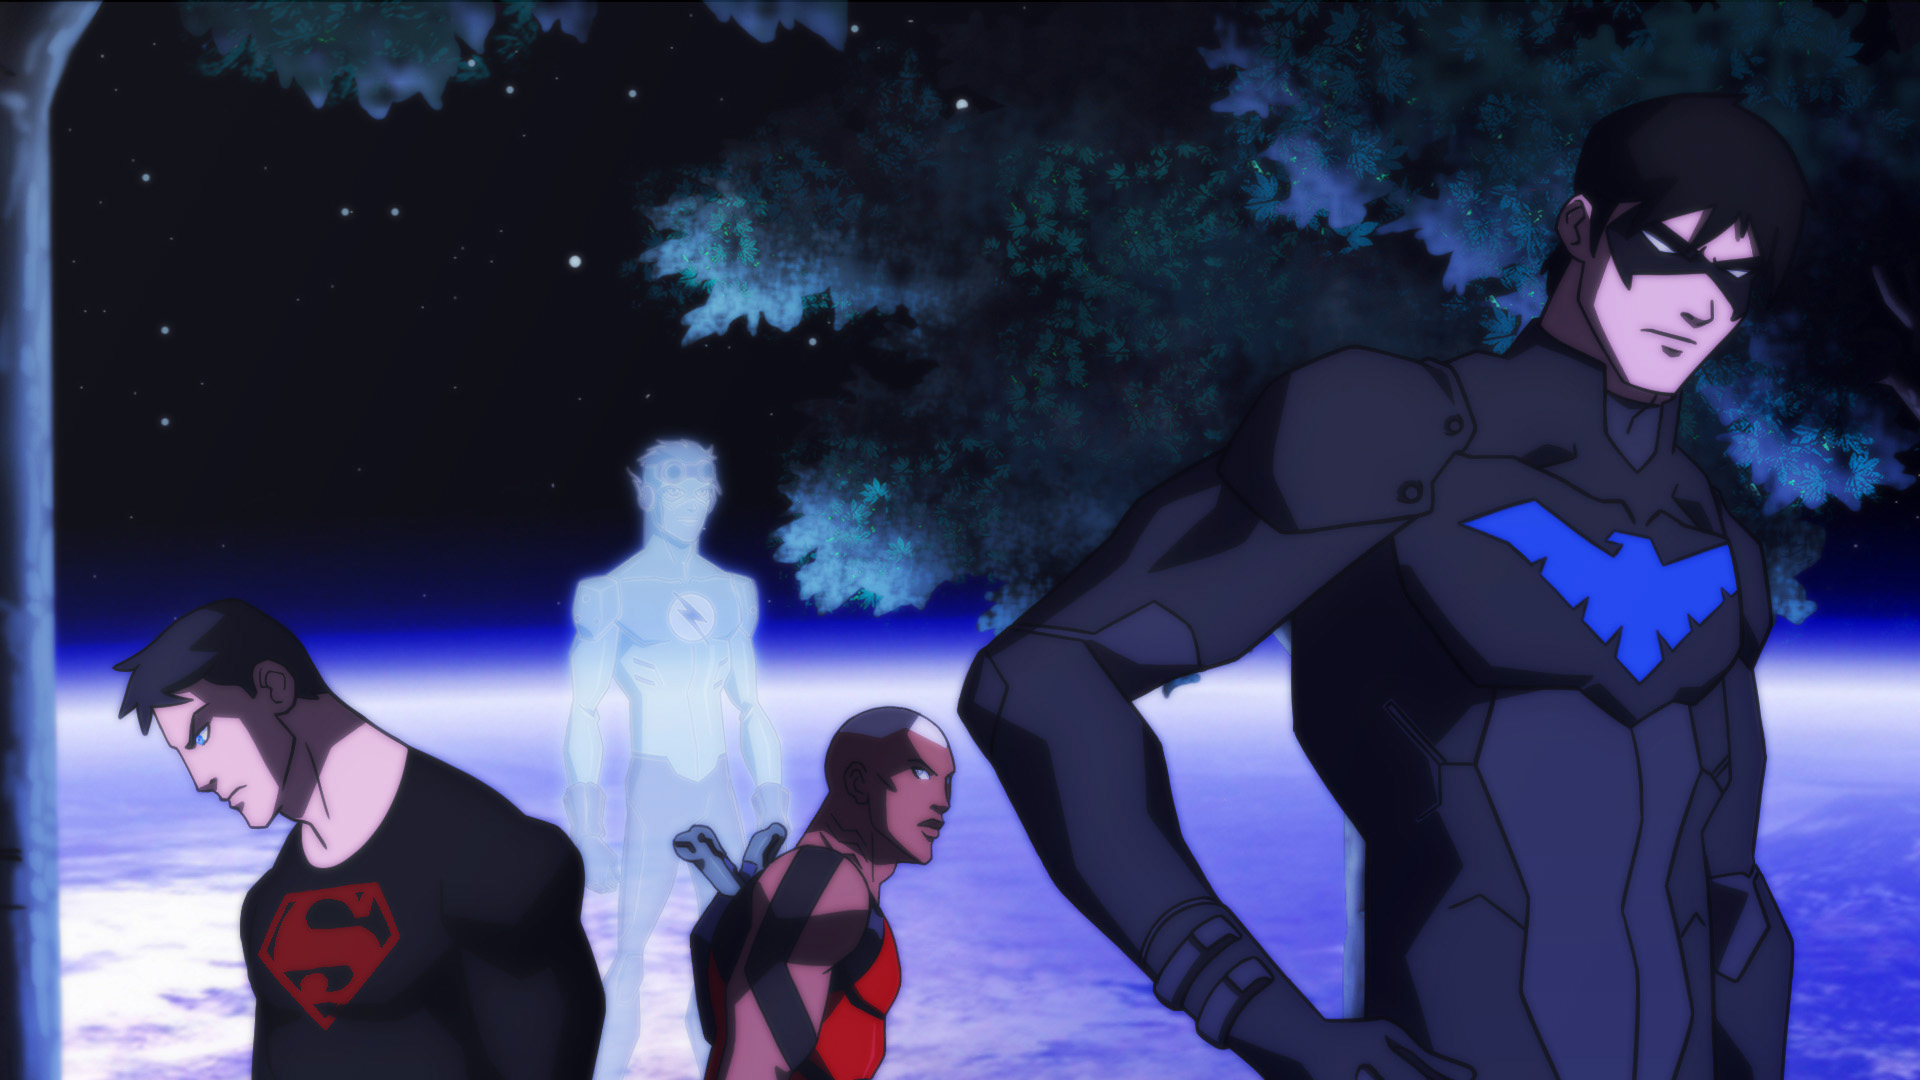 High Resolution Wallpaper | Young Justice: End Game 1920x1080 px